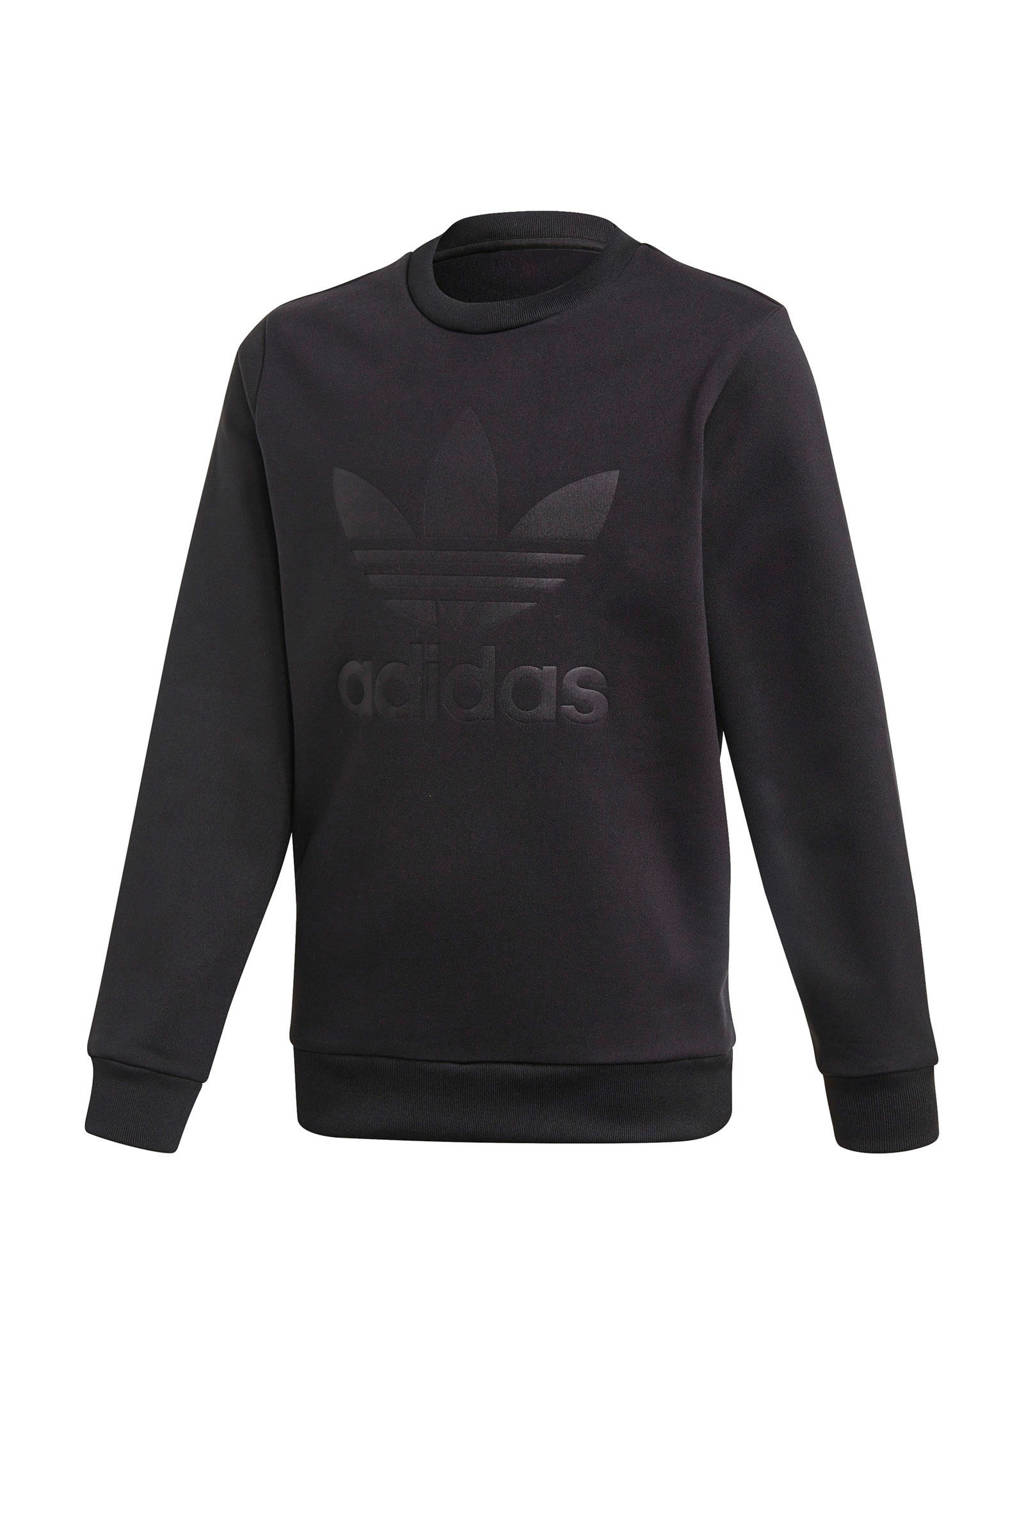 adidas Originals fleece sweater met logo zwart, Zwart